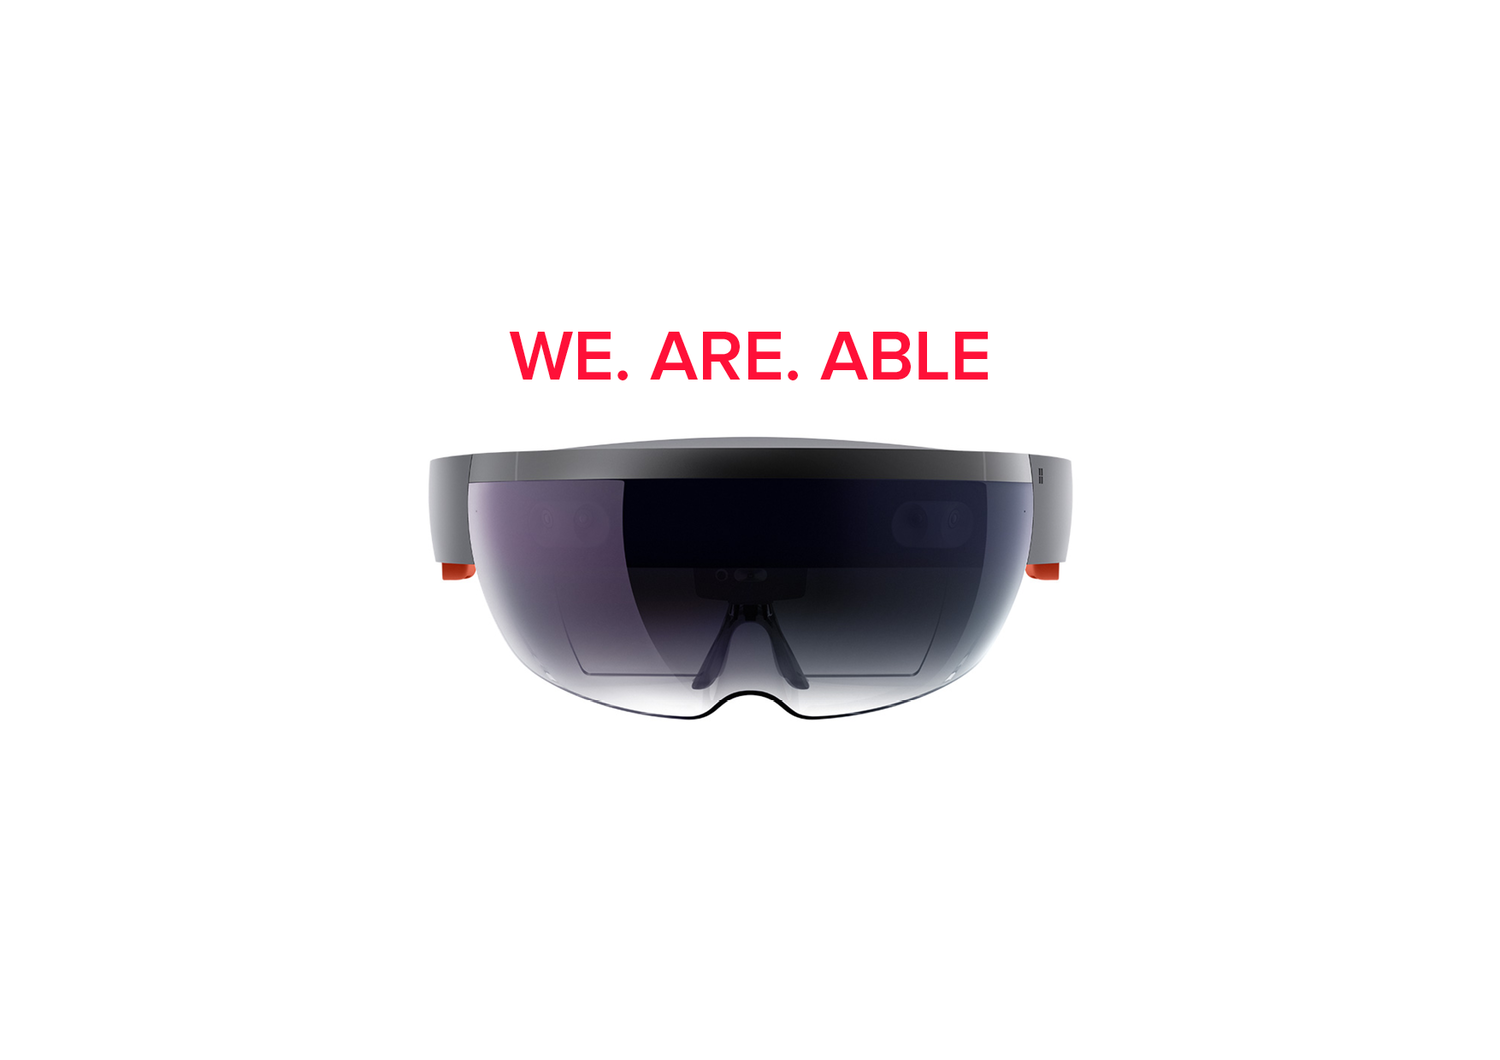 INDE offers full Wearable Augmented Reality development